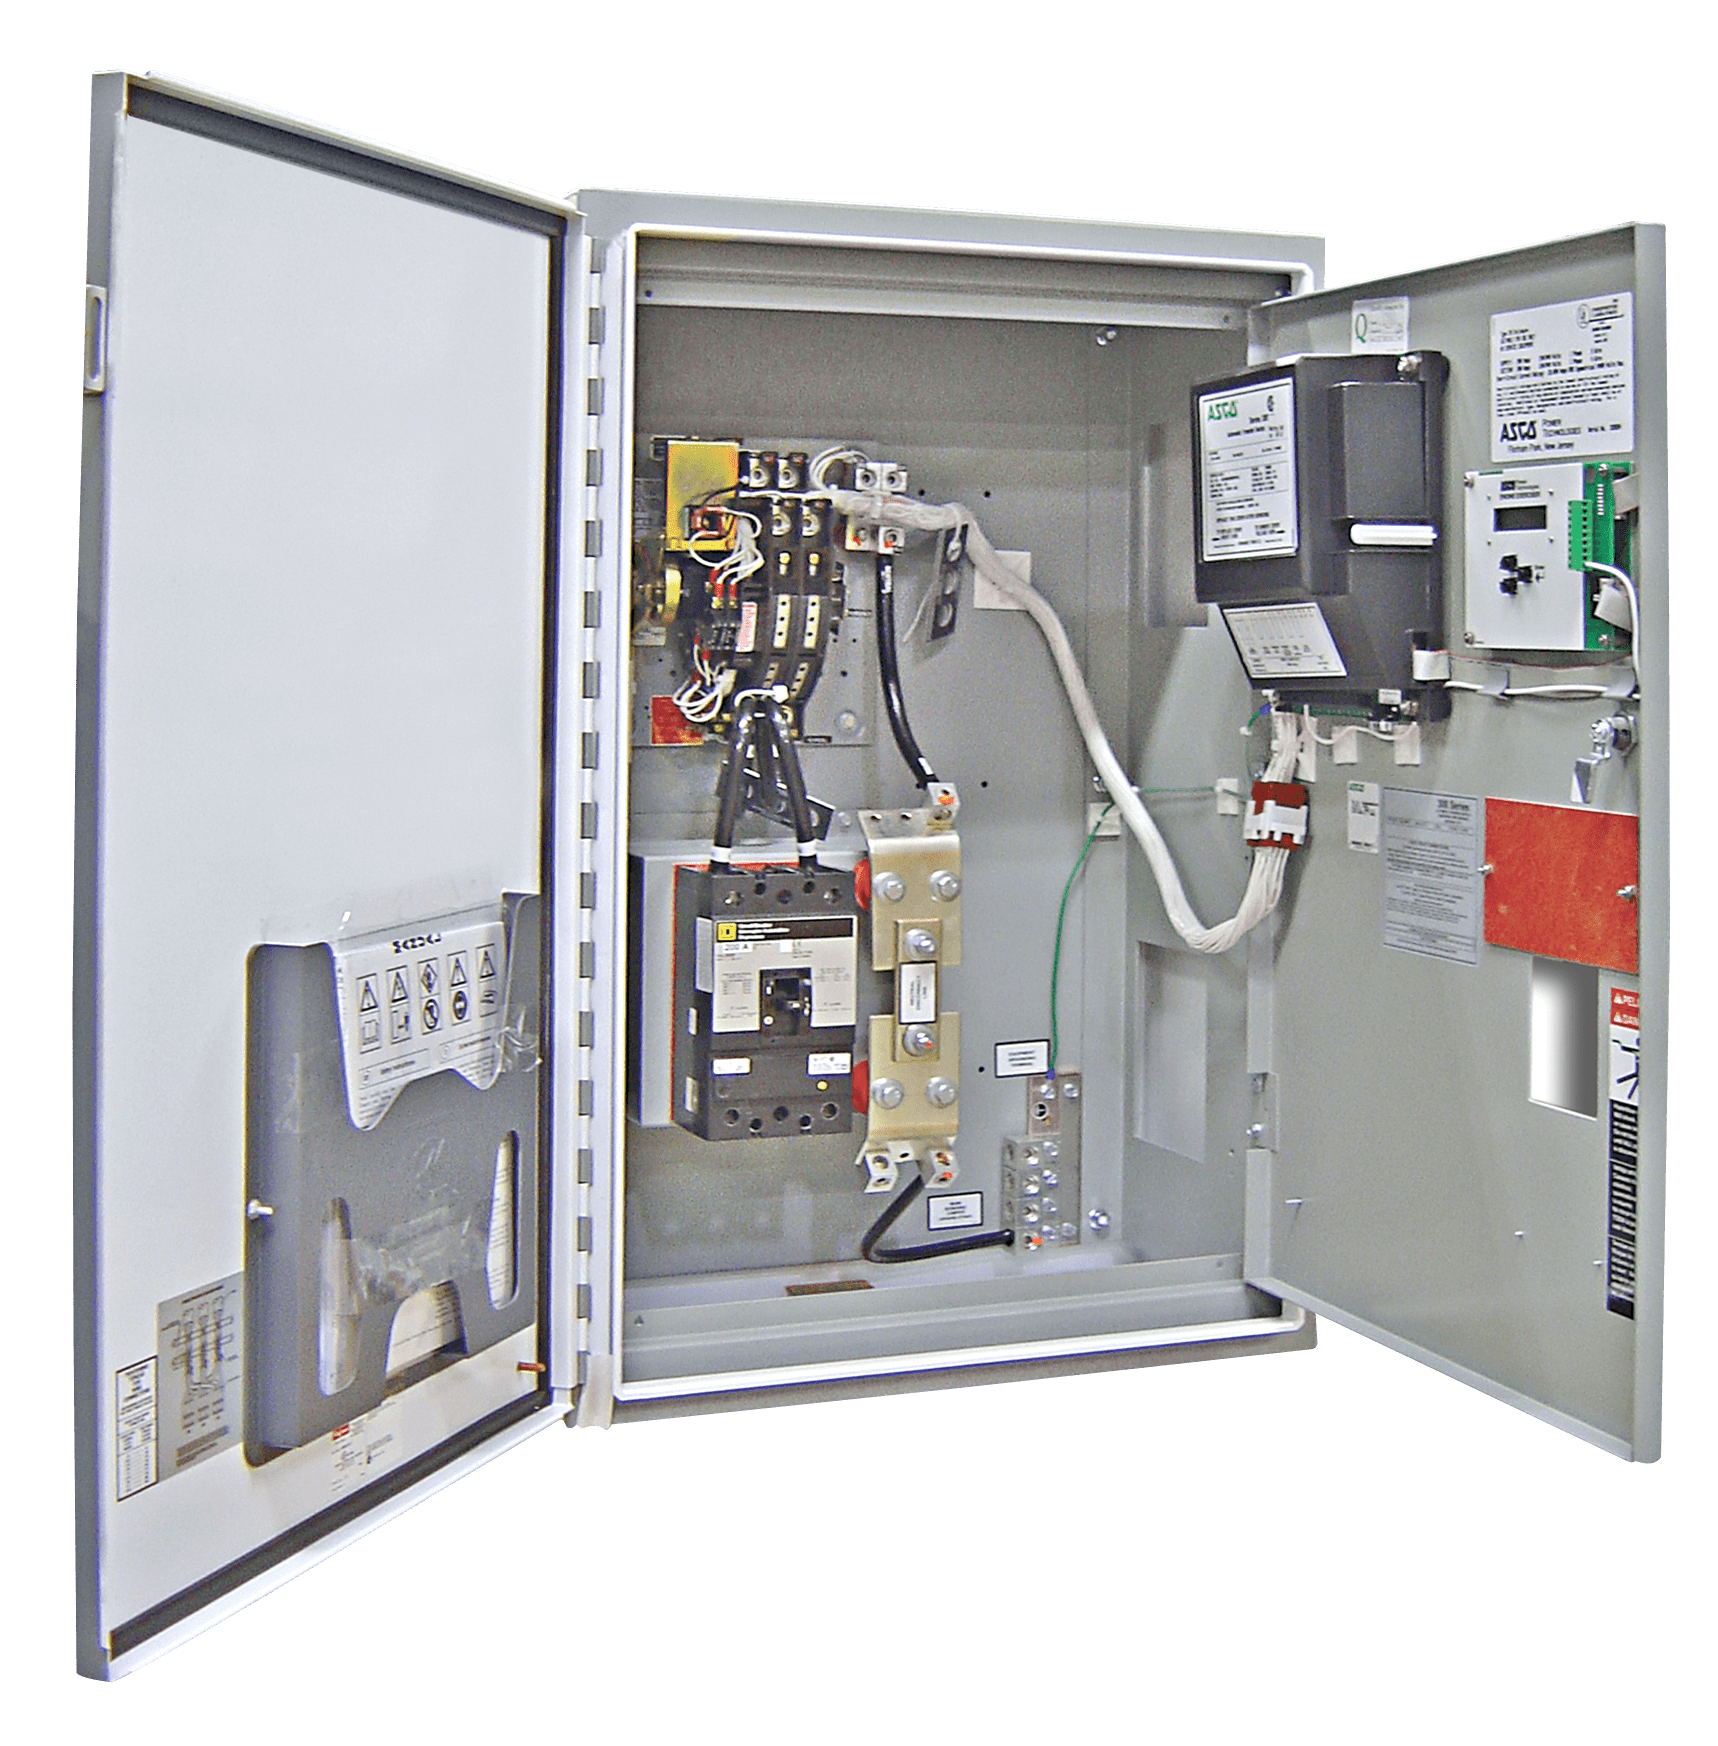 asco 4000 wiring diagram redarc bcdc charger 800 amp automatic transfer switch 480 volt 3 pole